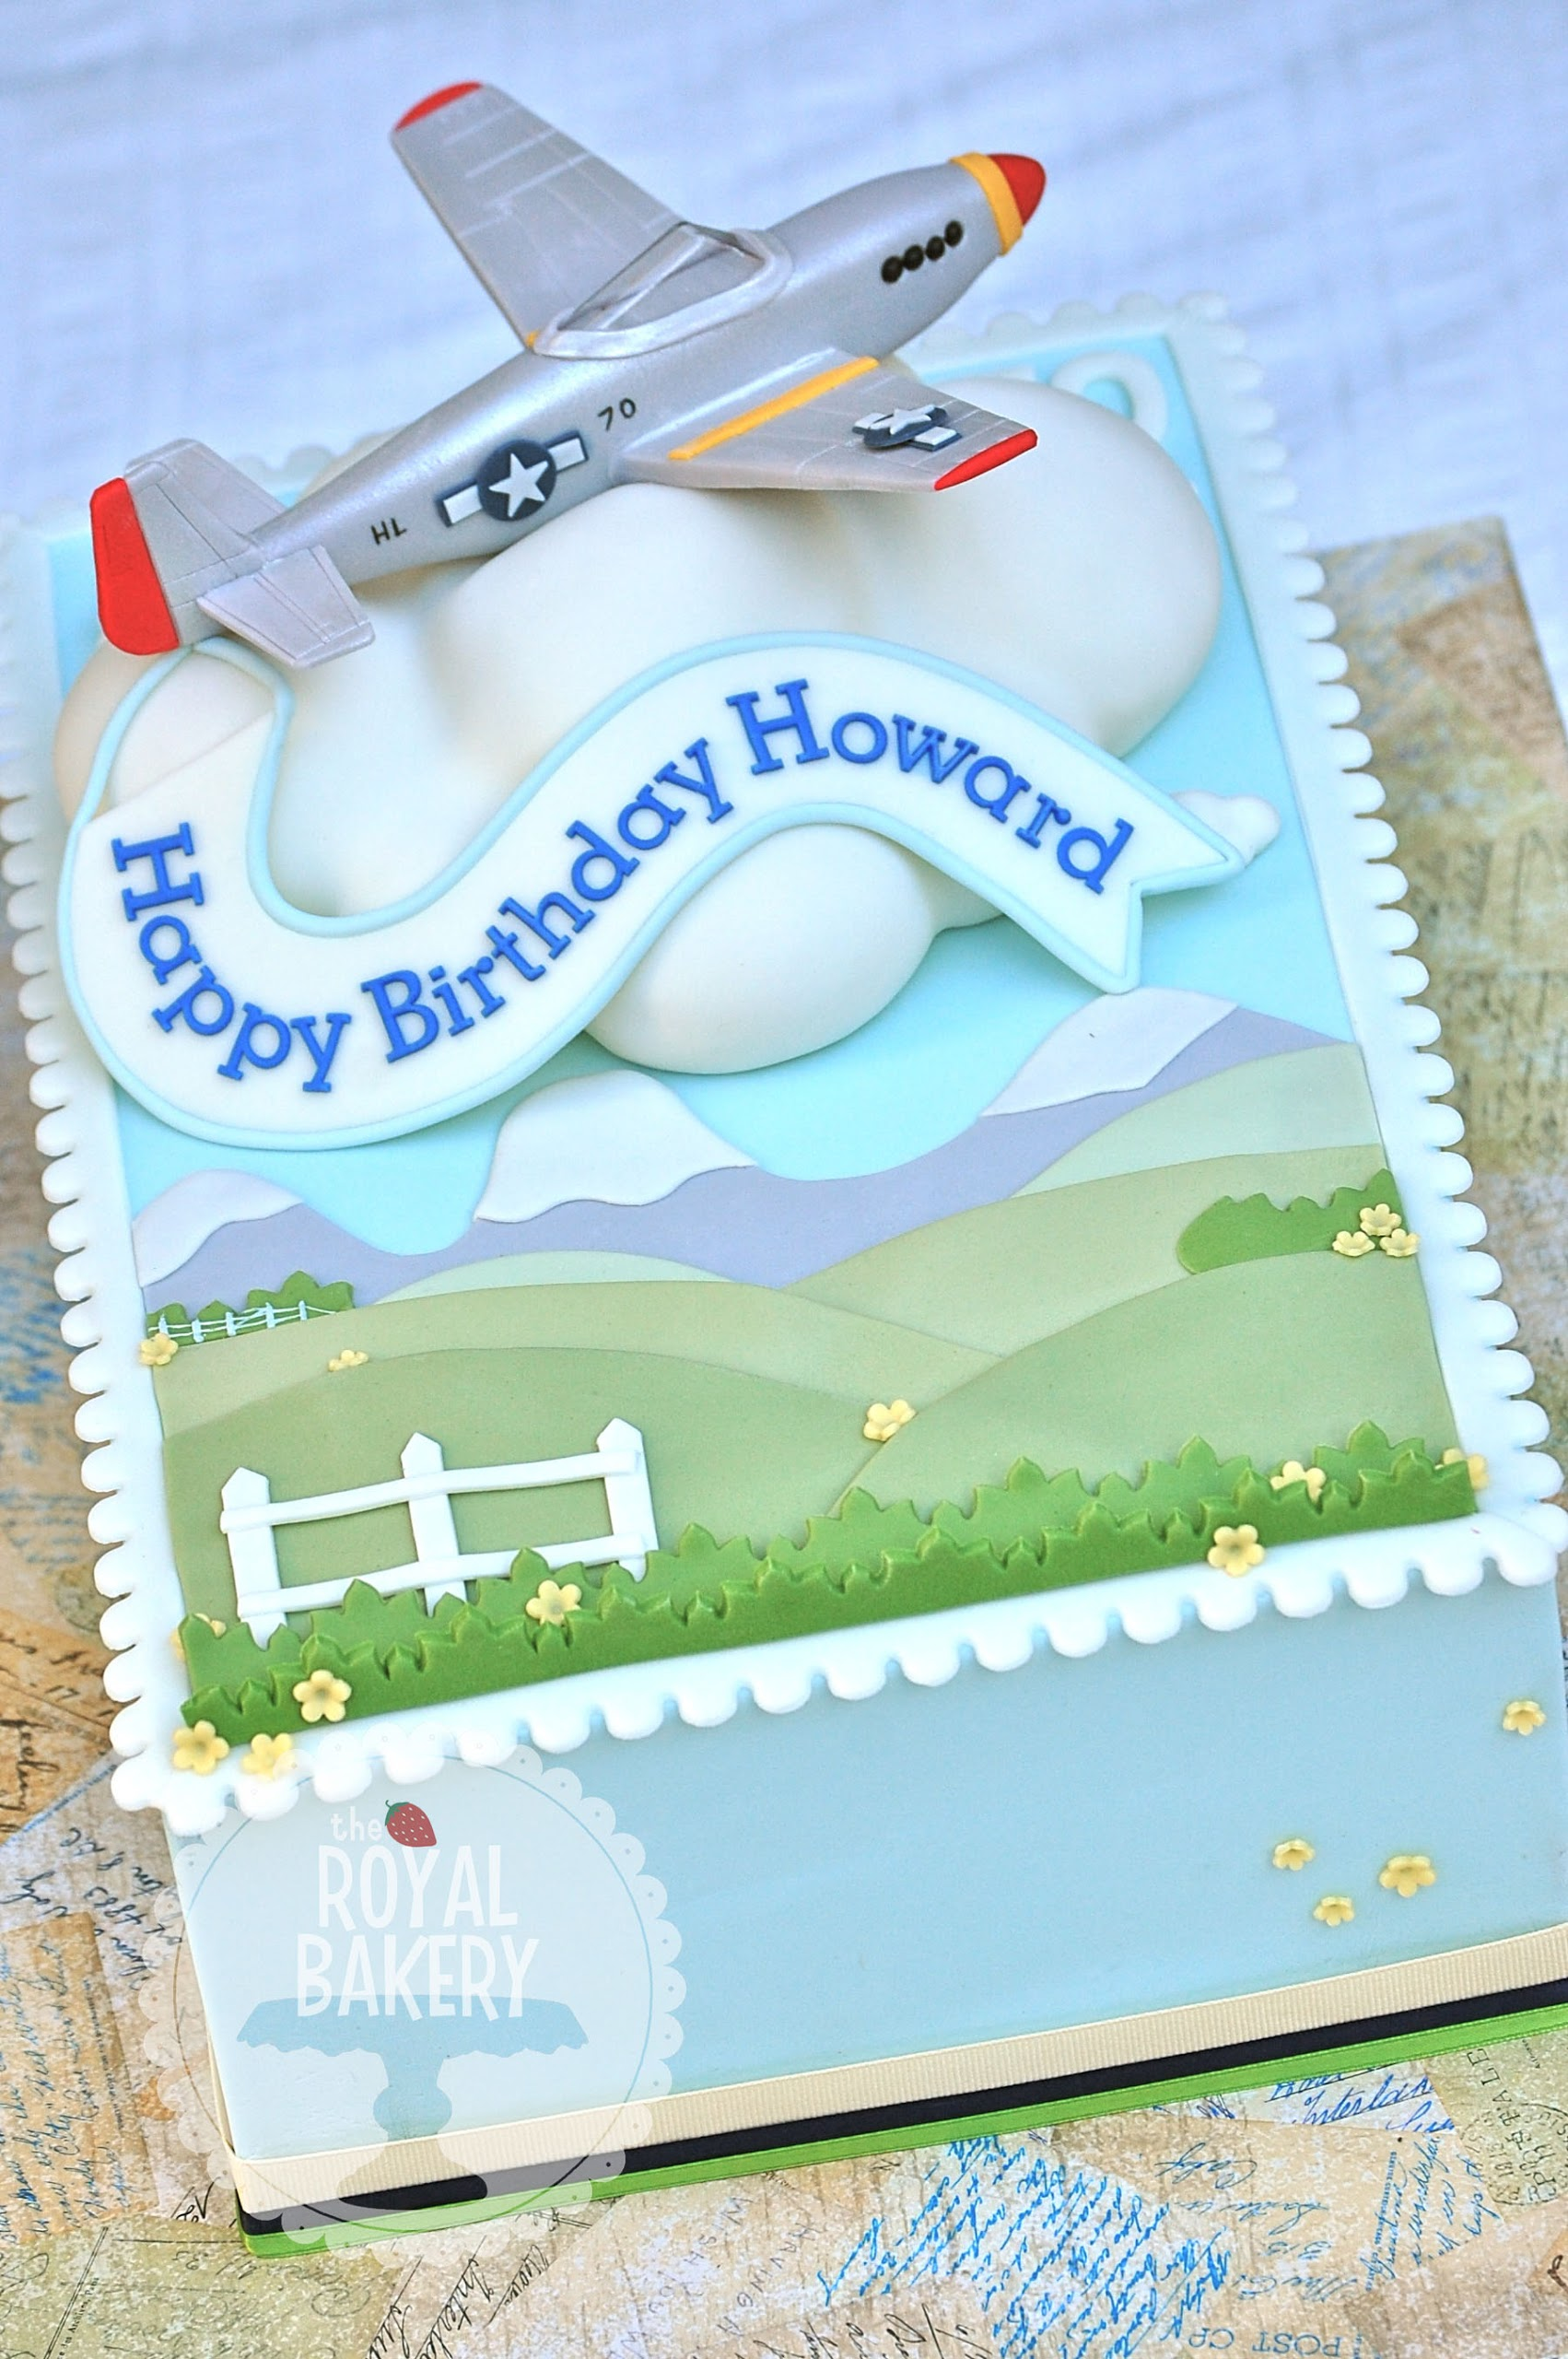 Cake with Airplane Theme